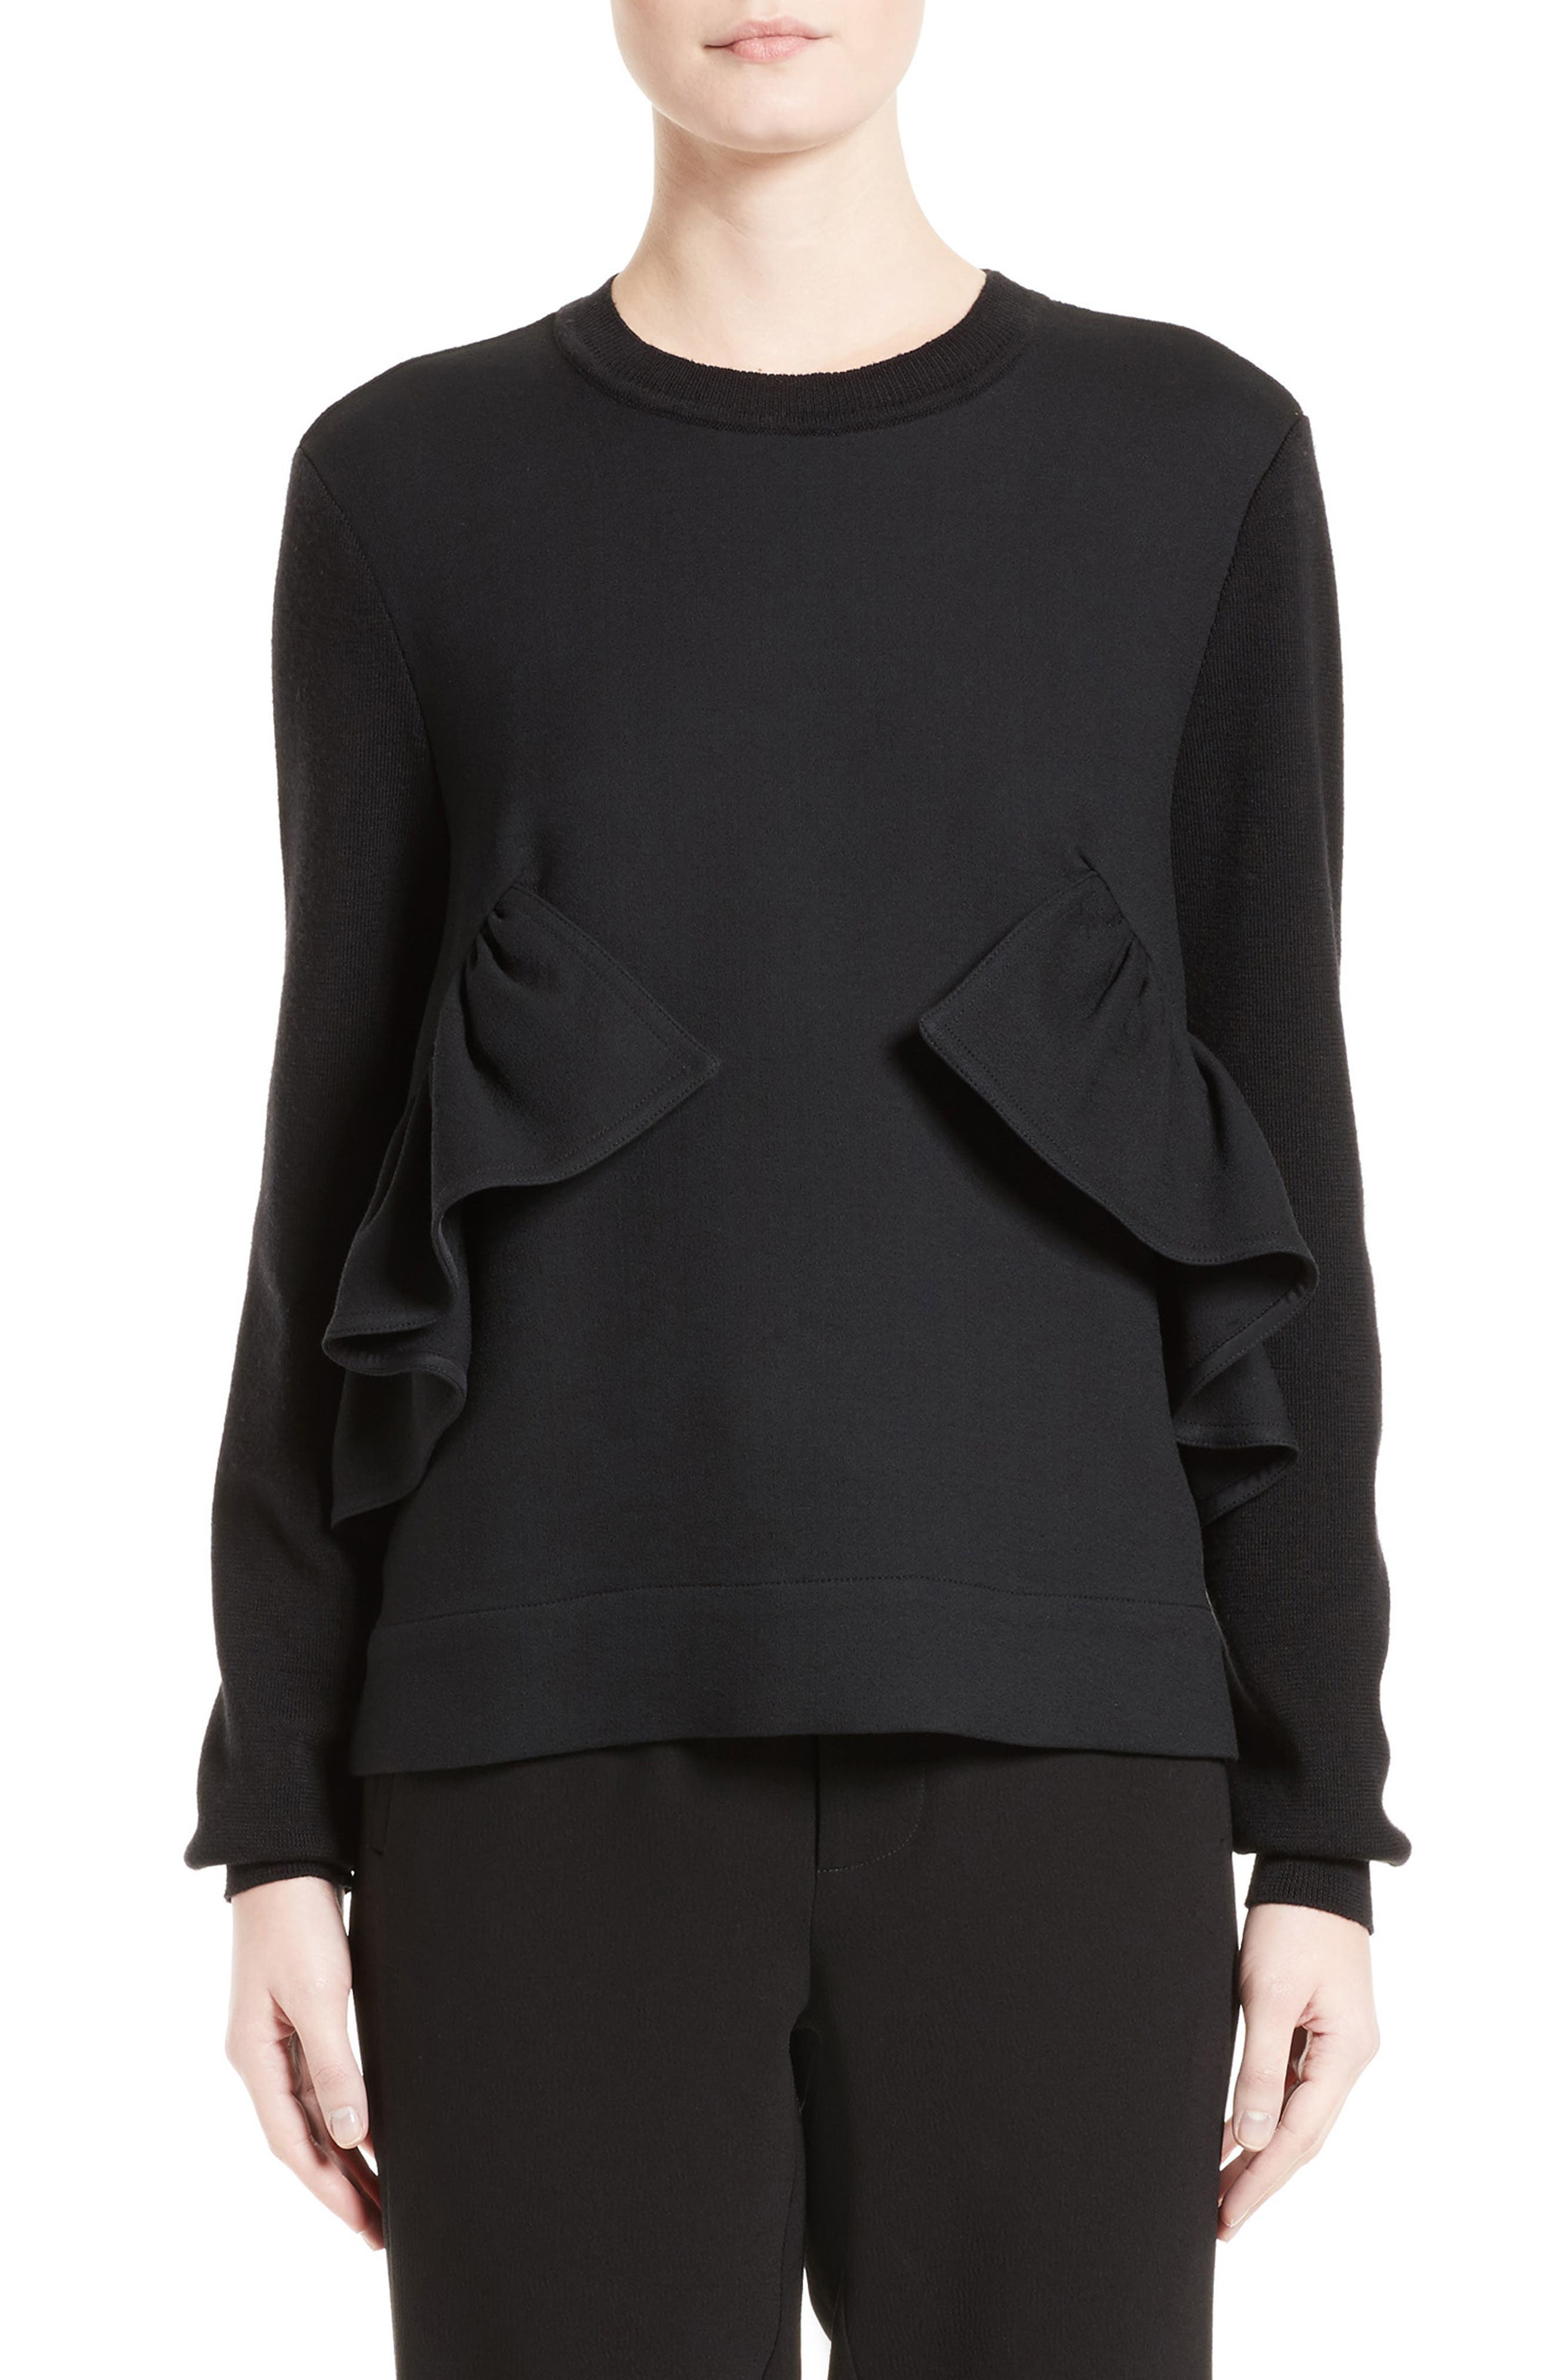 Alternate Image 1 Selected - Marni Ruffle Crewneck Sweater